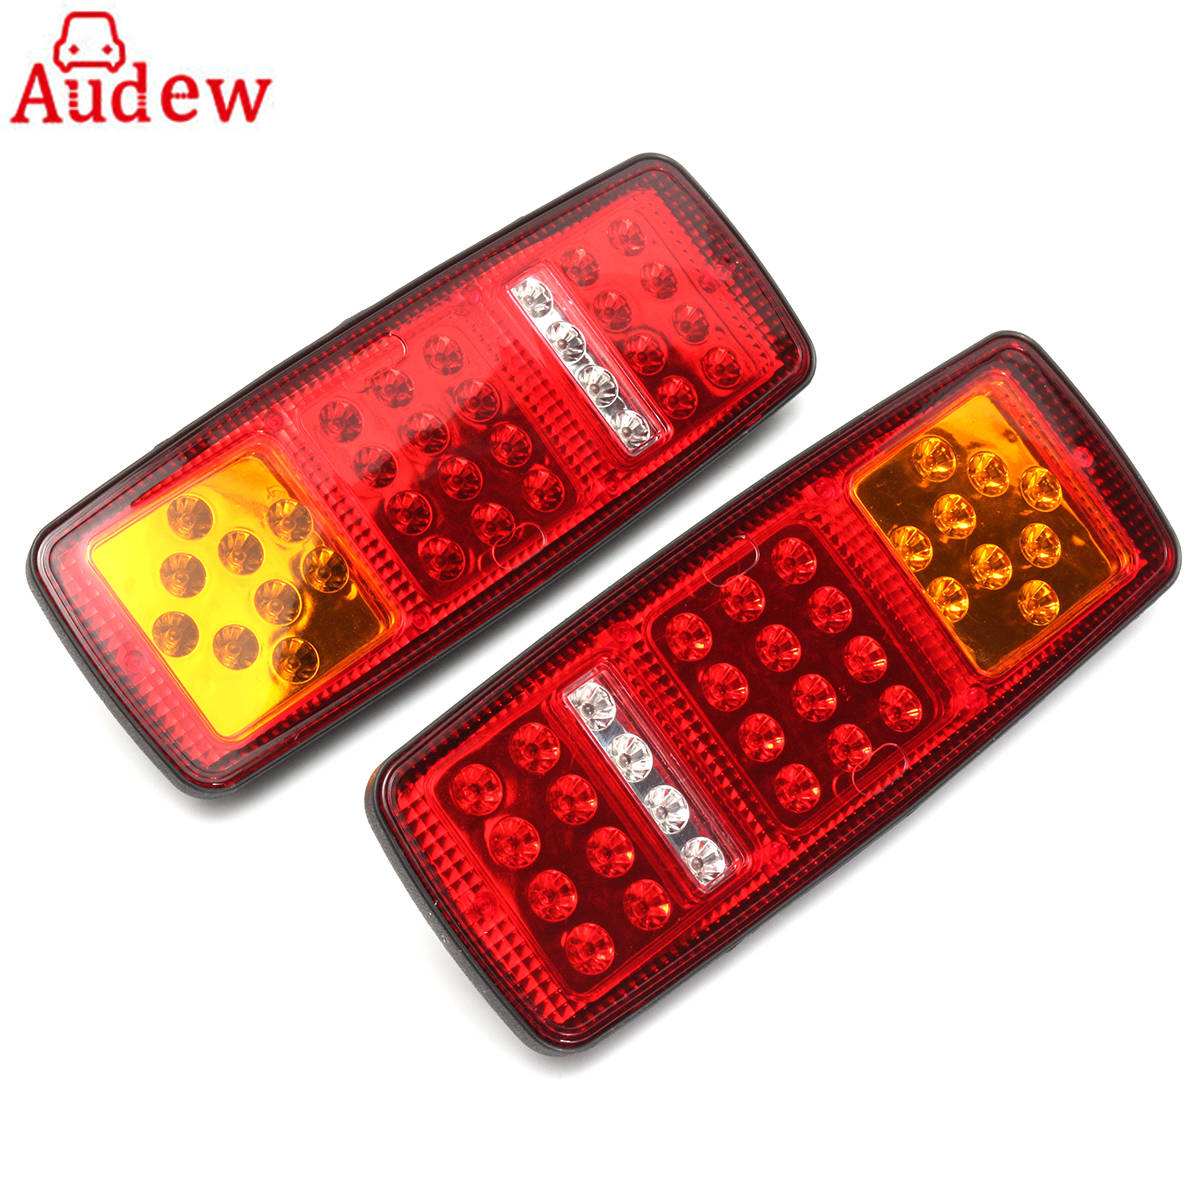 2Pcs 33 LED Trailer Tail Lamp Truck Bus for Van Stop Rear Tail Indicator Lights Reverse Lamp 12V -Waterproof eonstime 2pcs 12v 16 led red white truck trailer boat stop turn tail light reverse light lamp waterproof